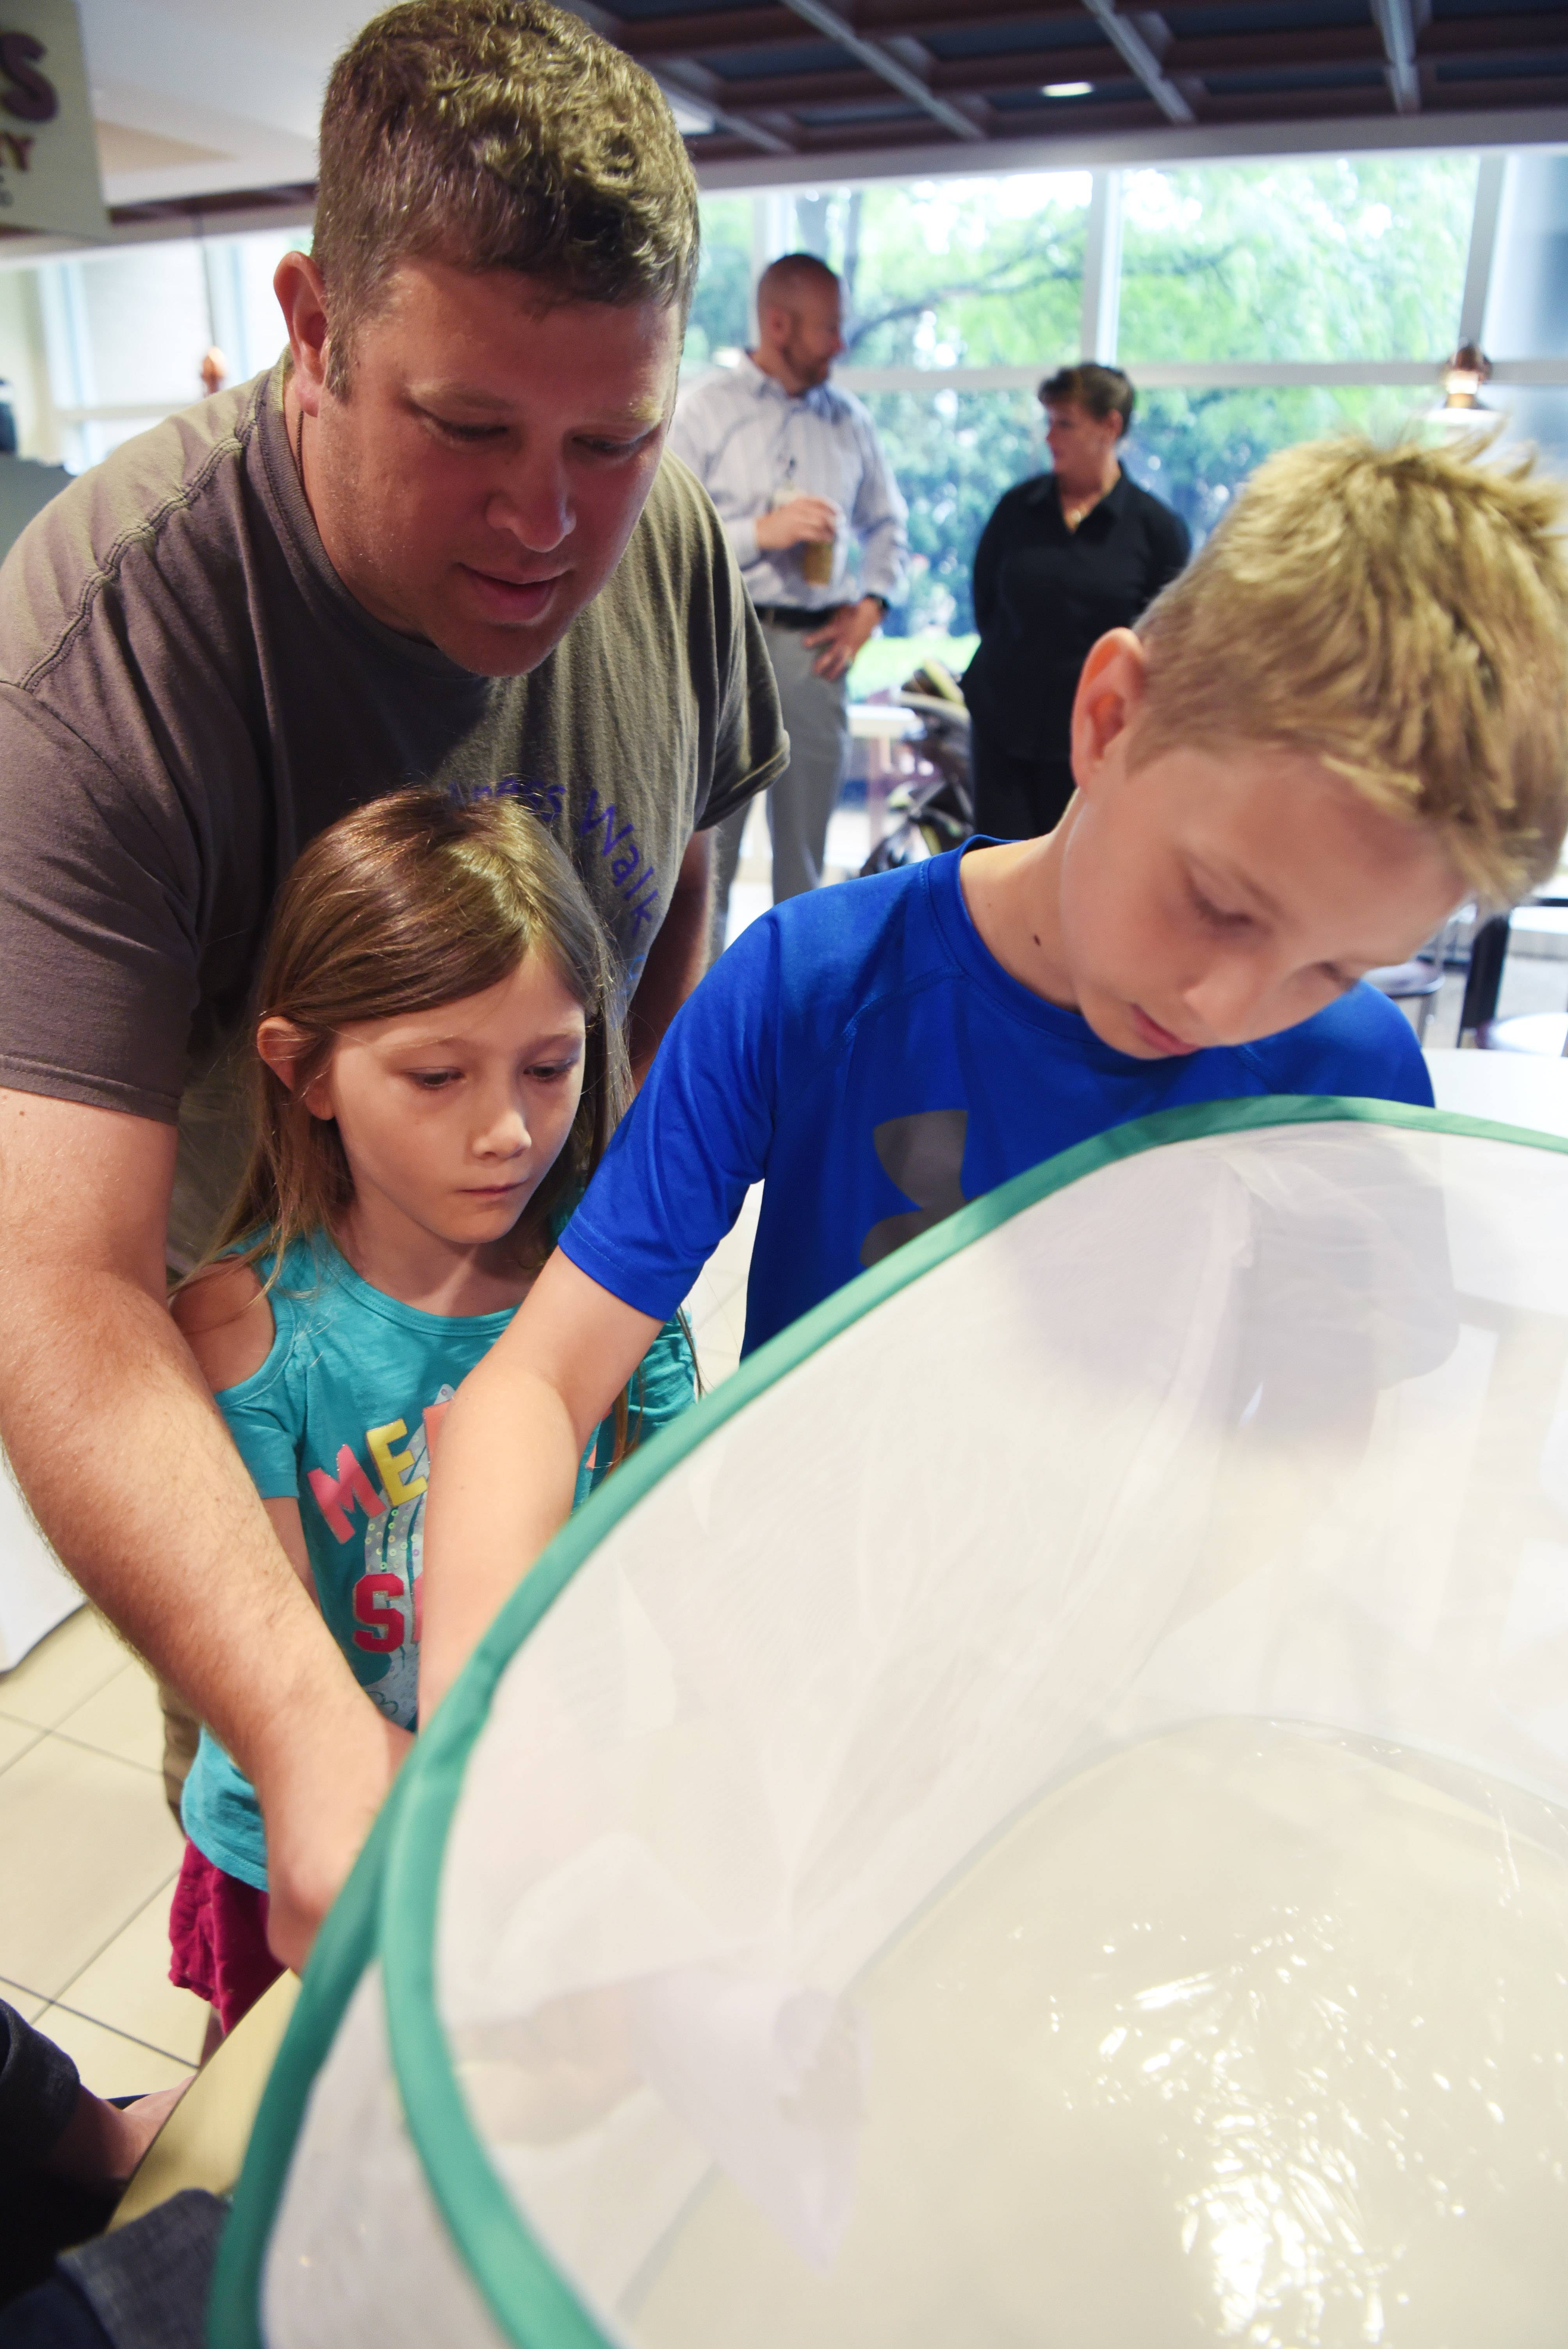 Butterfly release provides fellowship for grieving parents